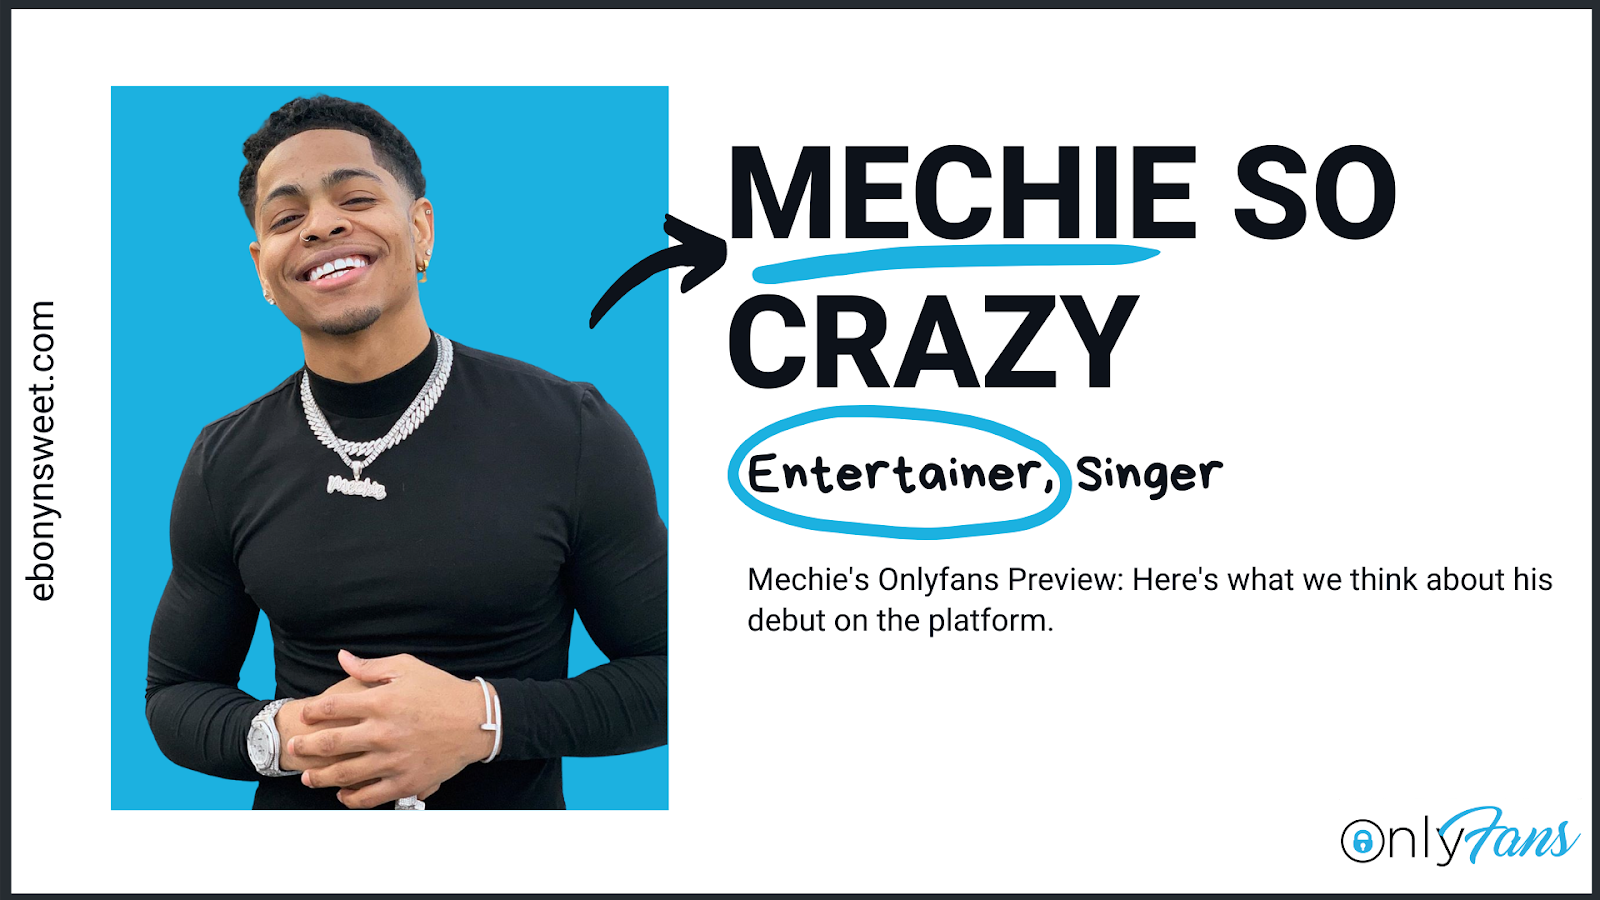 Mechie So Crazy, Mechiesocrazy, instagram, twitter, wake up, official video, scandal, blac chyna, mtv ex on the beach, Demetrius Harris, singer, fame, group 4EY, r&b, hip hop, mechie girlfriend, Washington D.C., net worth, Mechie nude leak, mechie nude, mechie big dick, mechie dick, Mechie So Crazy Onlyfans, Mechie Onlyfans